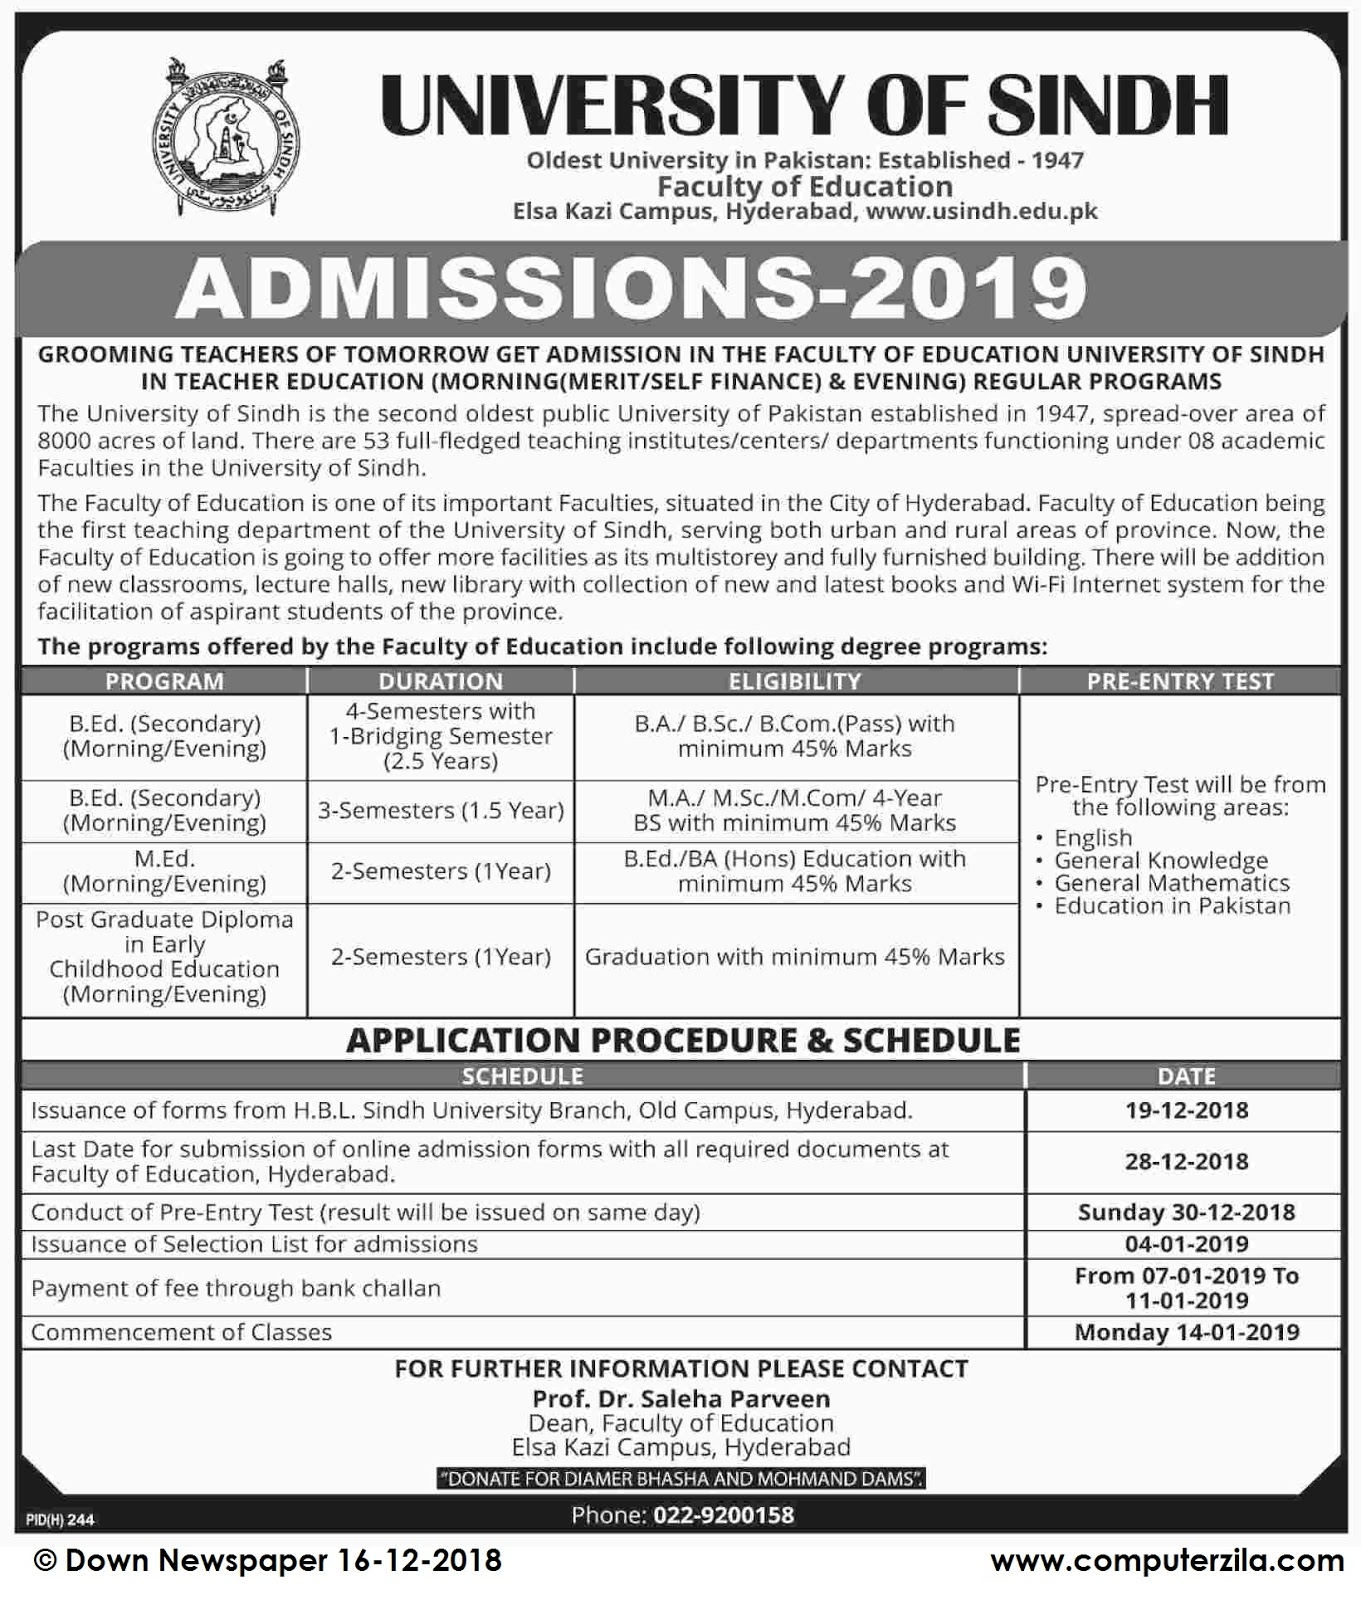 Admissions Open For Spring 2019 At USINDH Hyderabad Campus